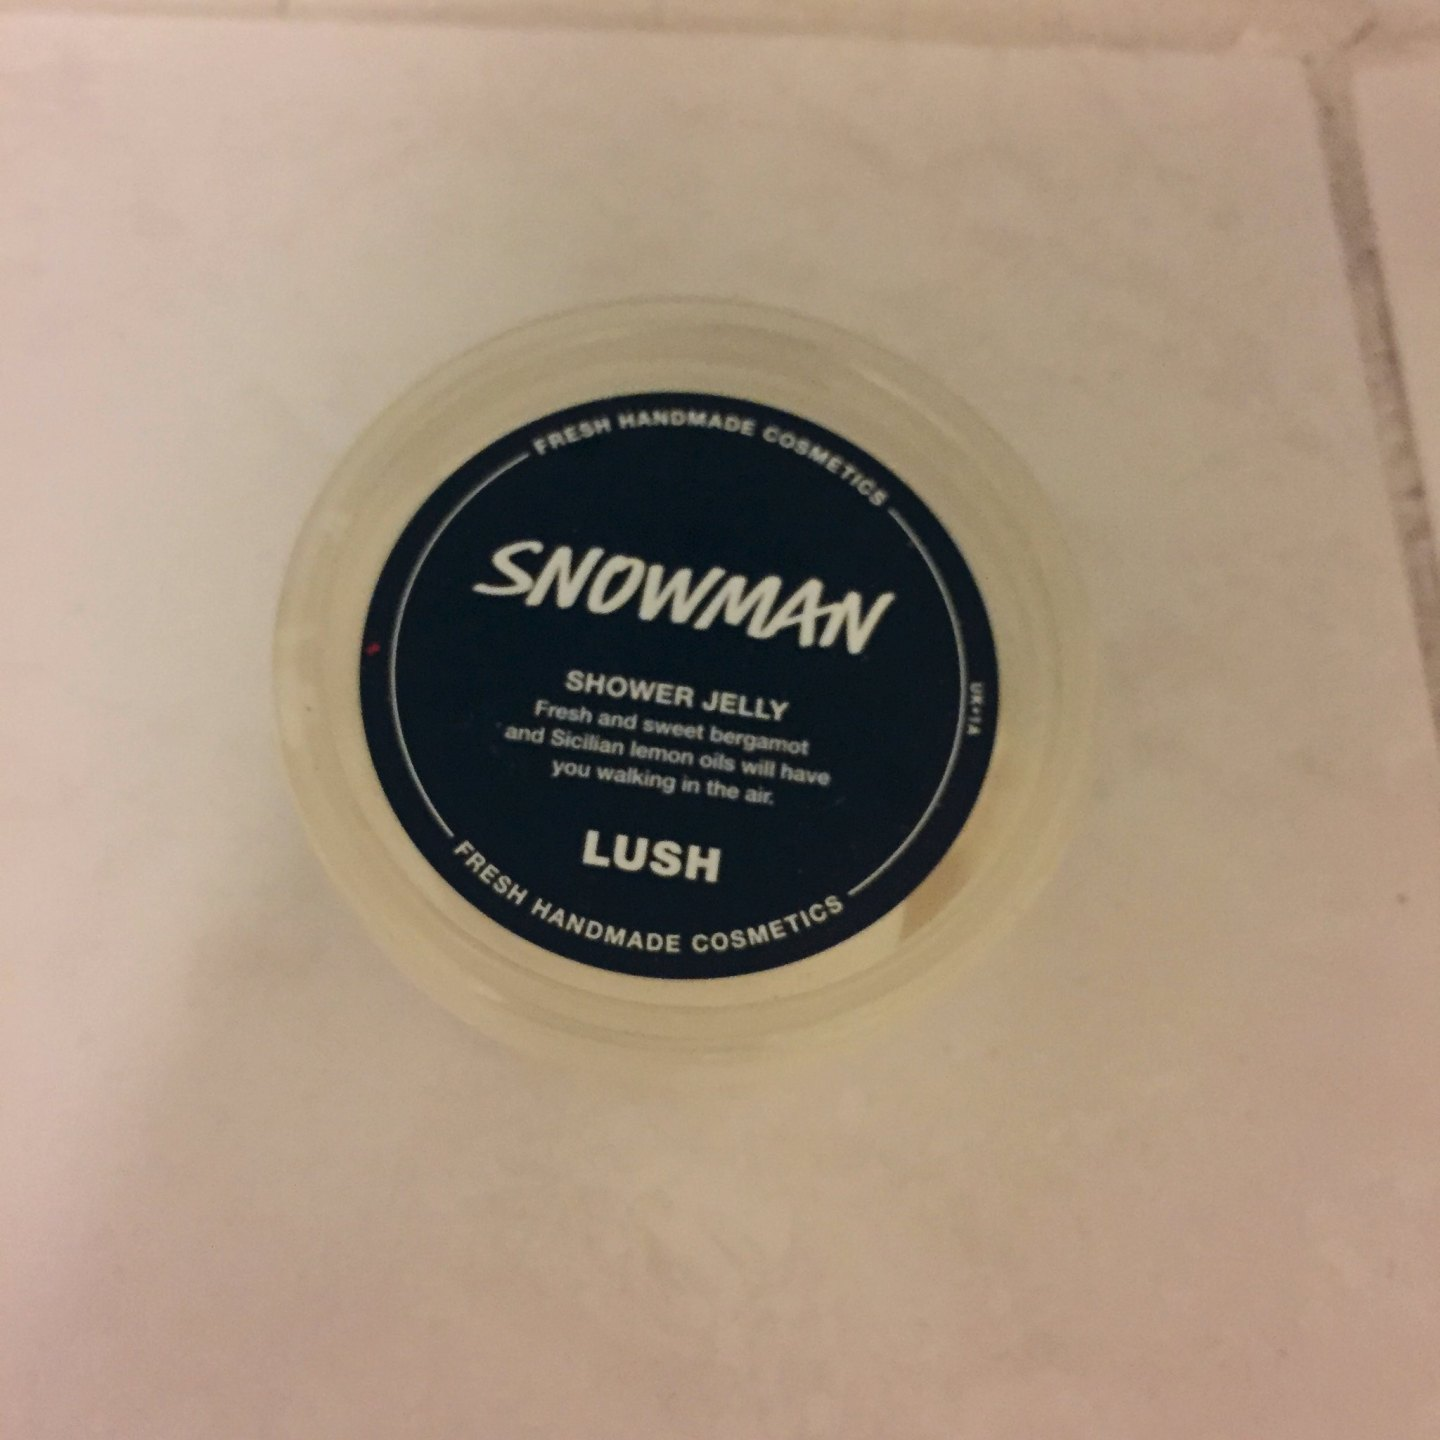 Lush Snowman Shower Jelly Review